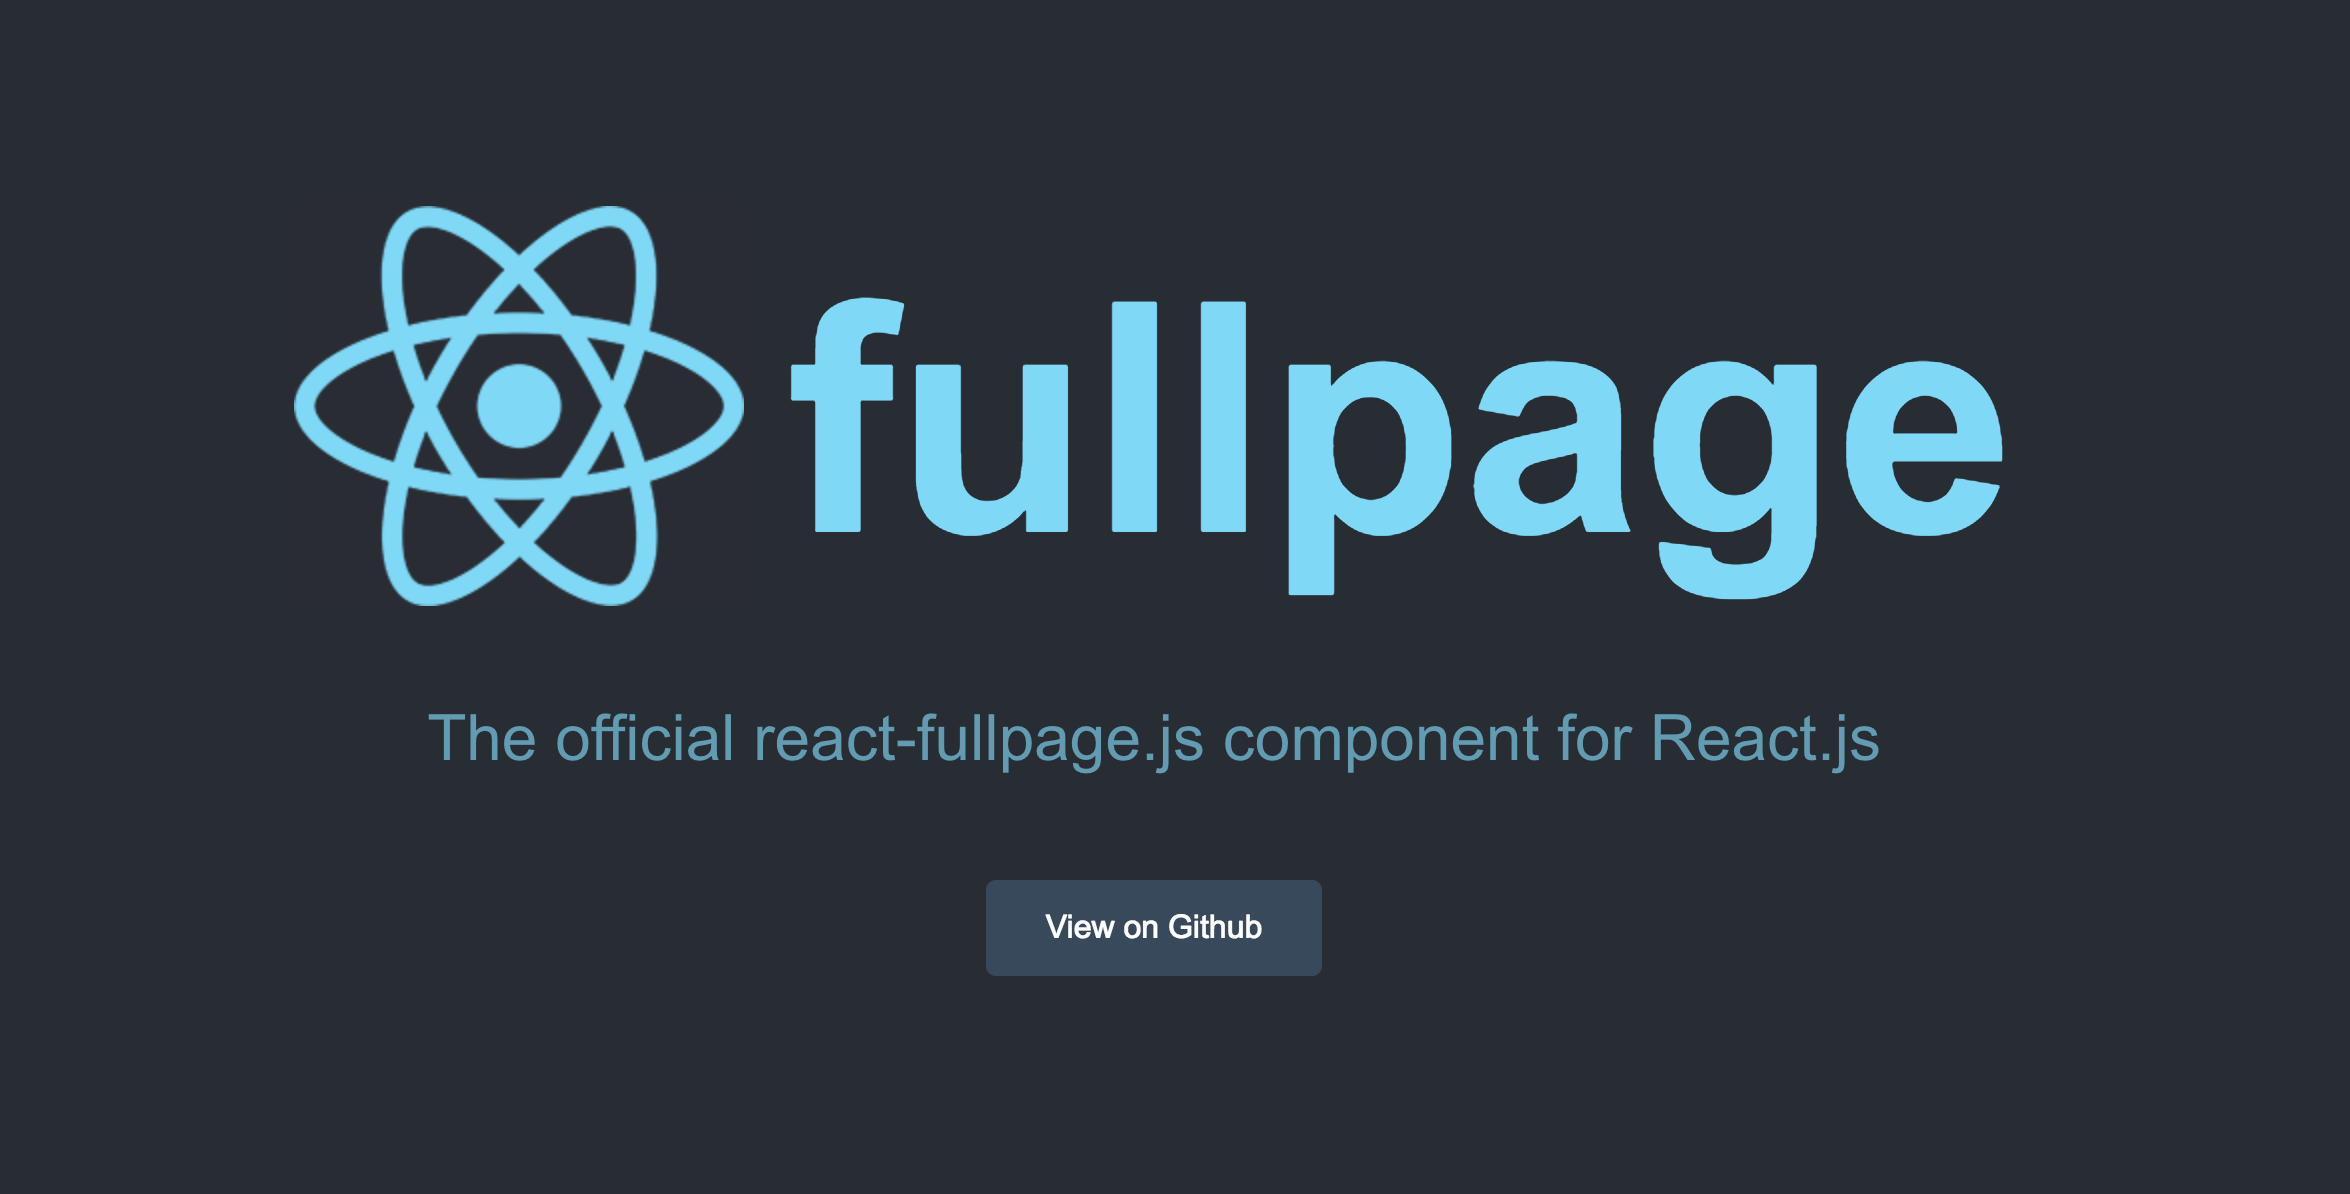 React fullpage - official react-fullpage component - React